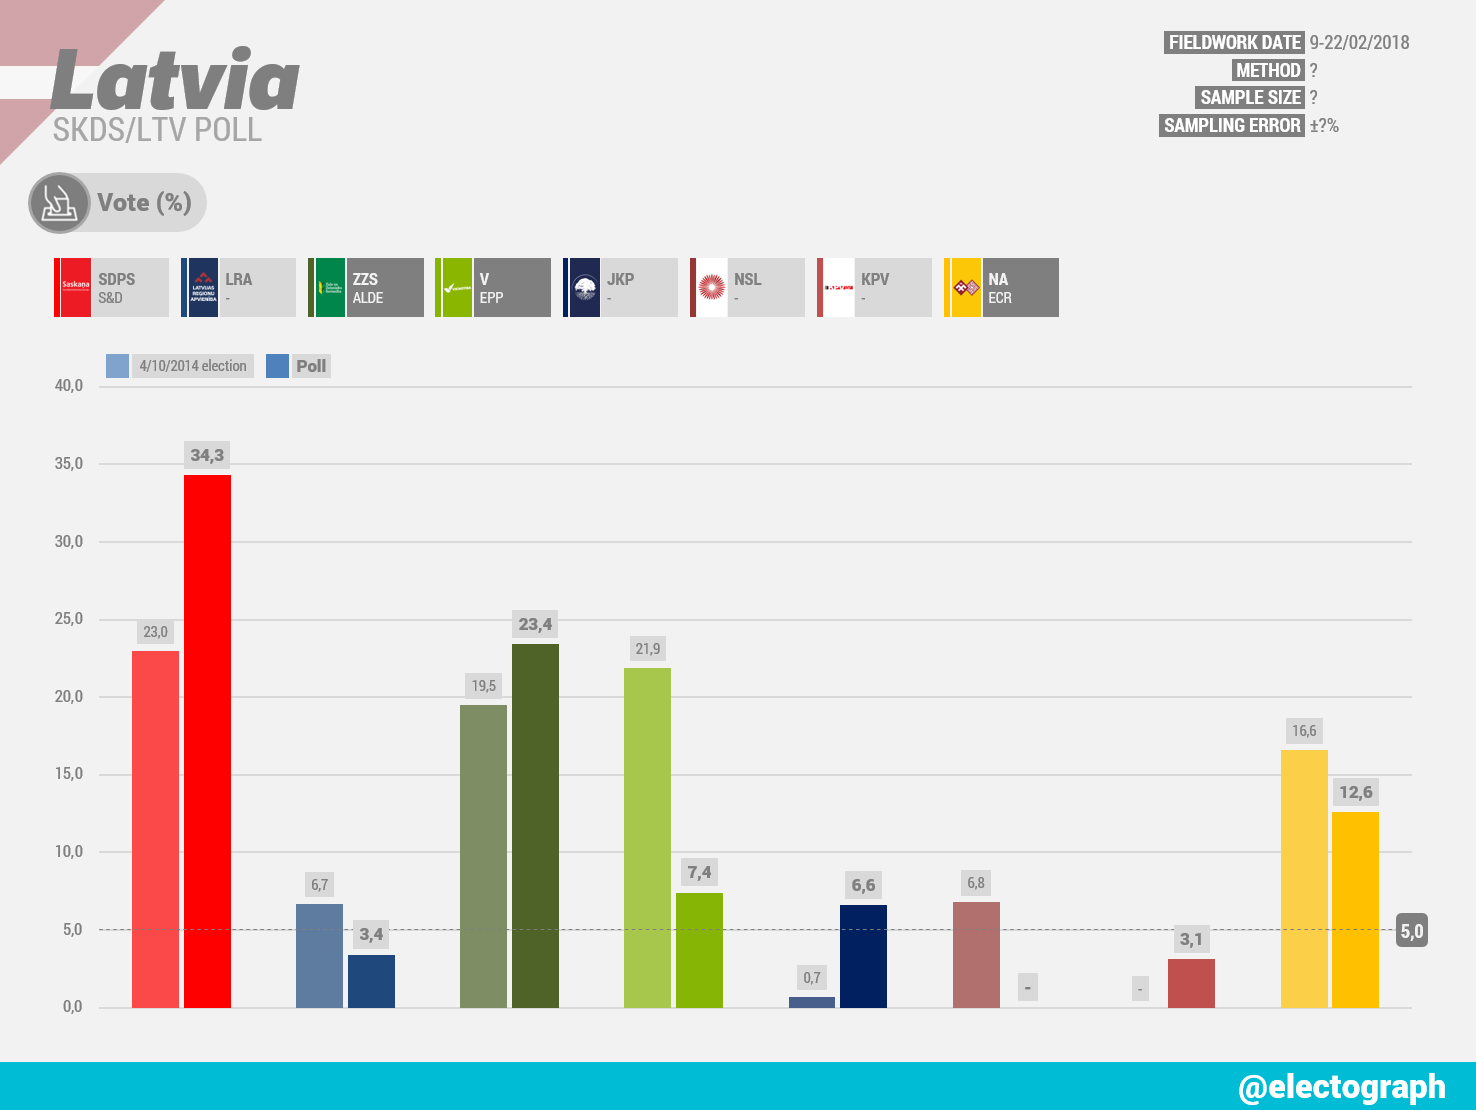 LATVIA SKDS poll chart for LTV, February 2018